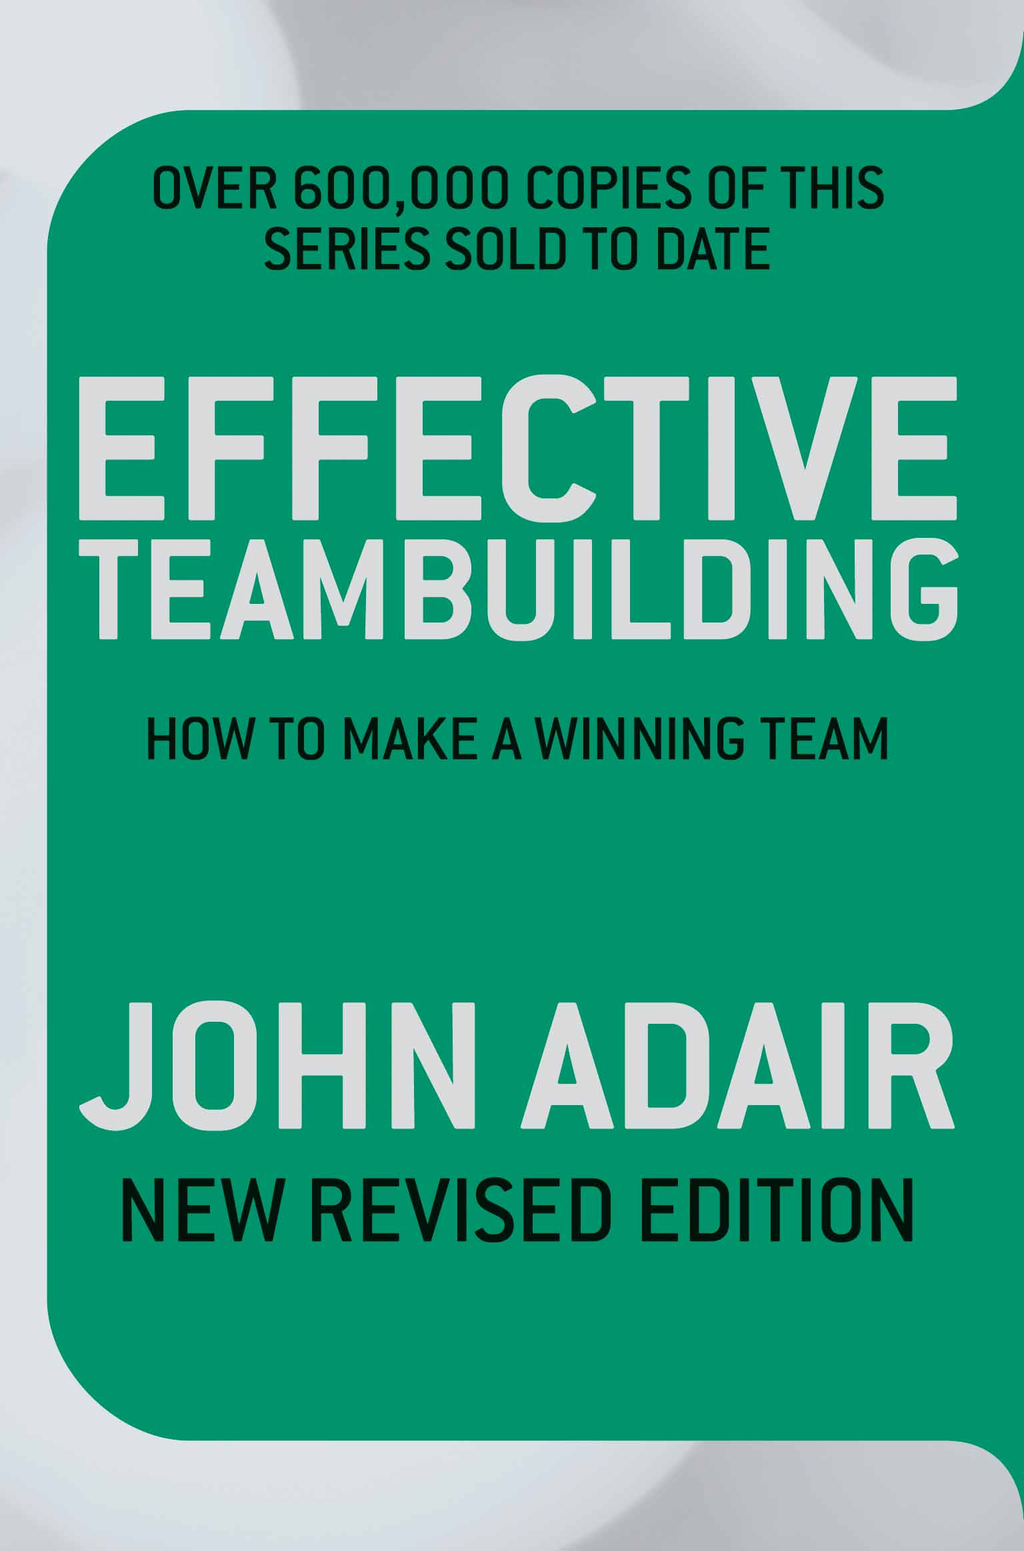 Effective Teambuilding How to Make a Winning Team